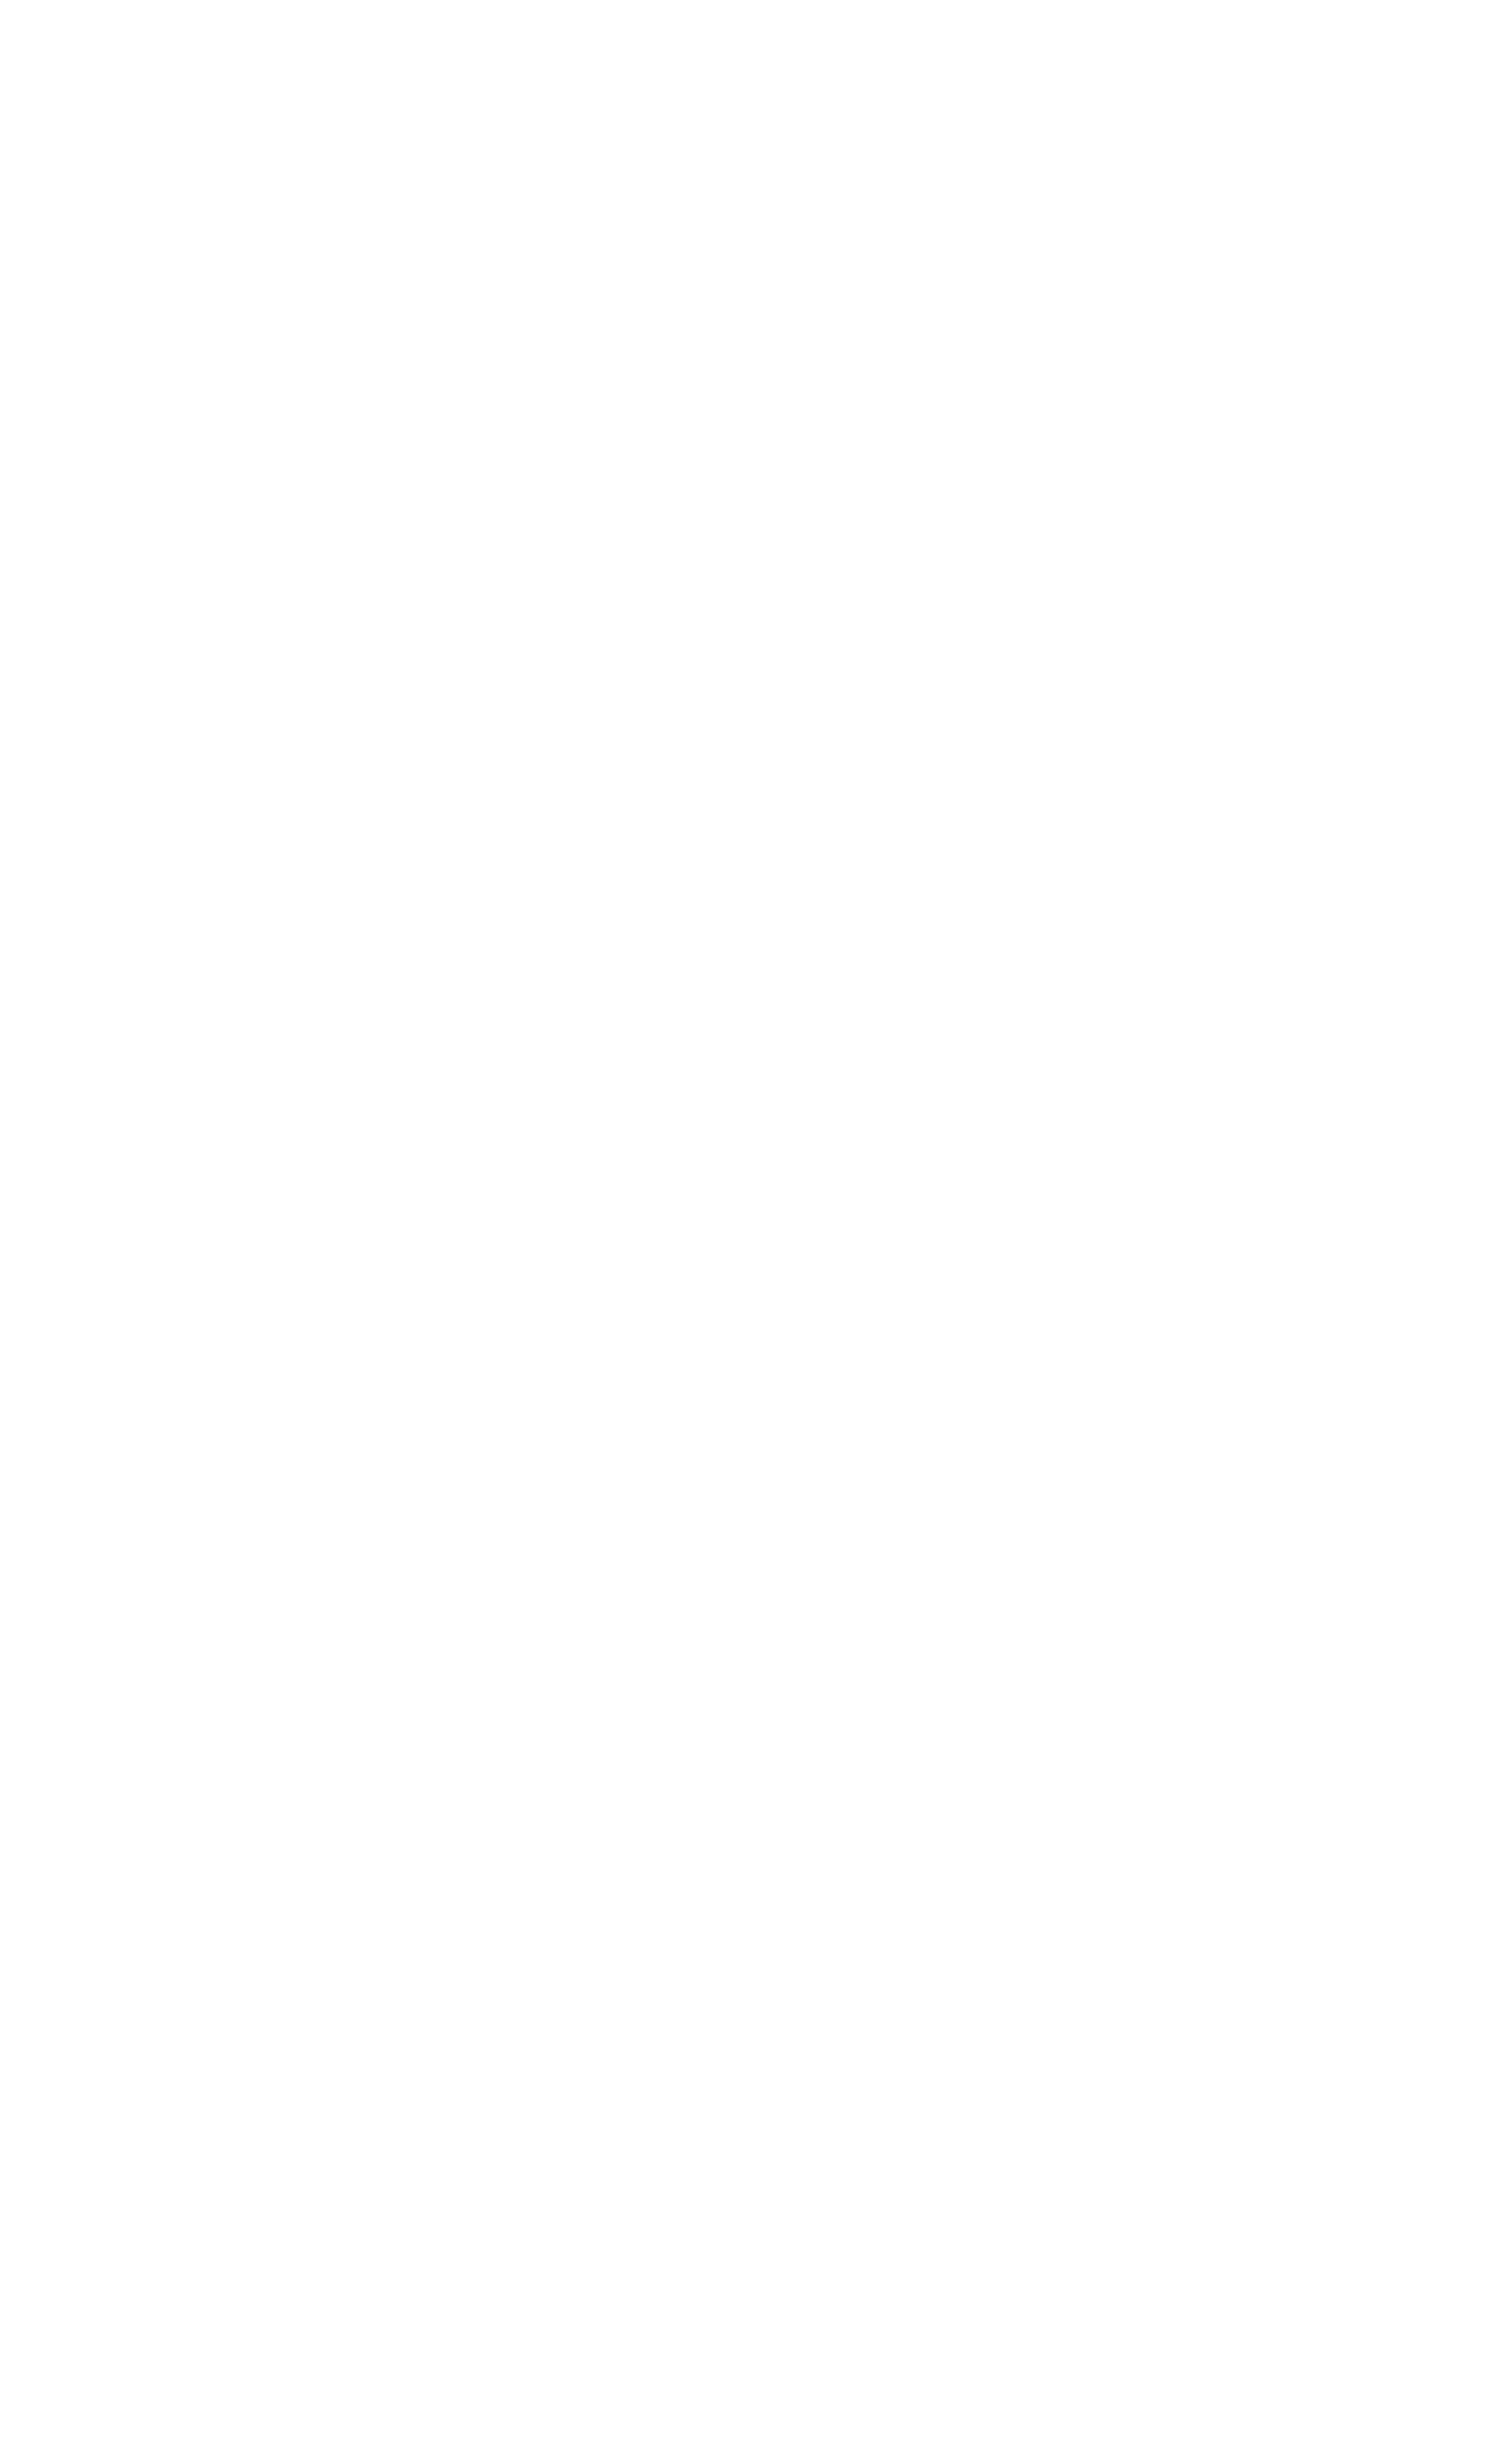 Knotted Root Brewing Company